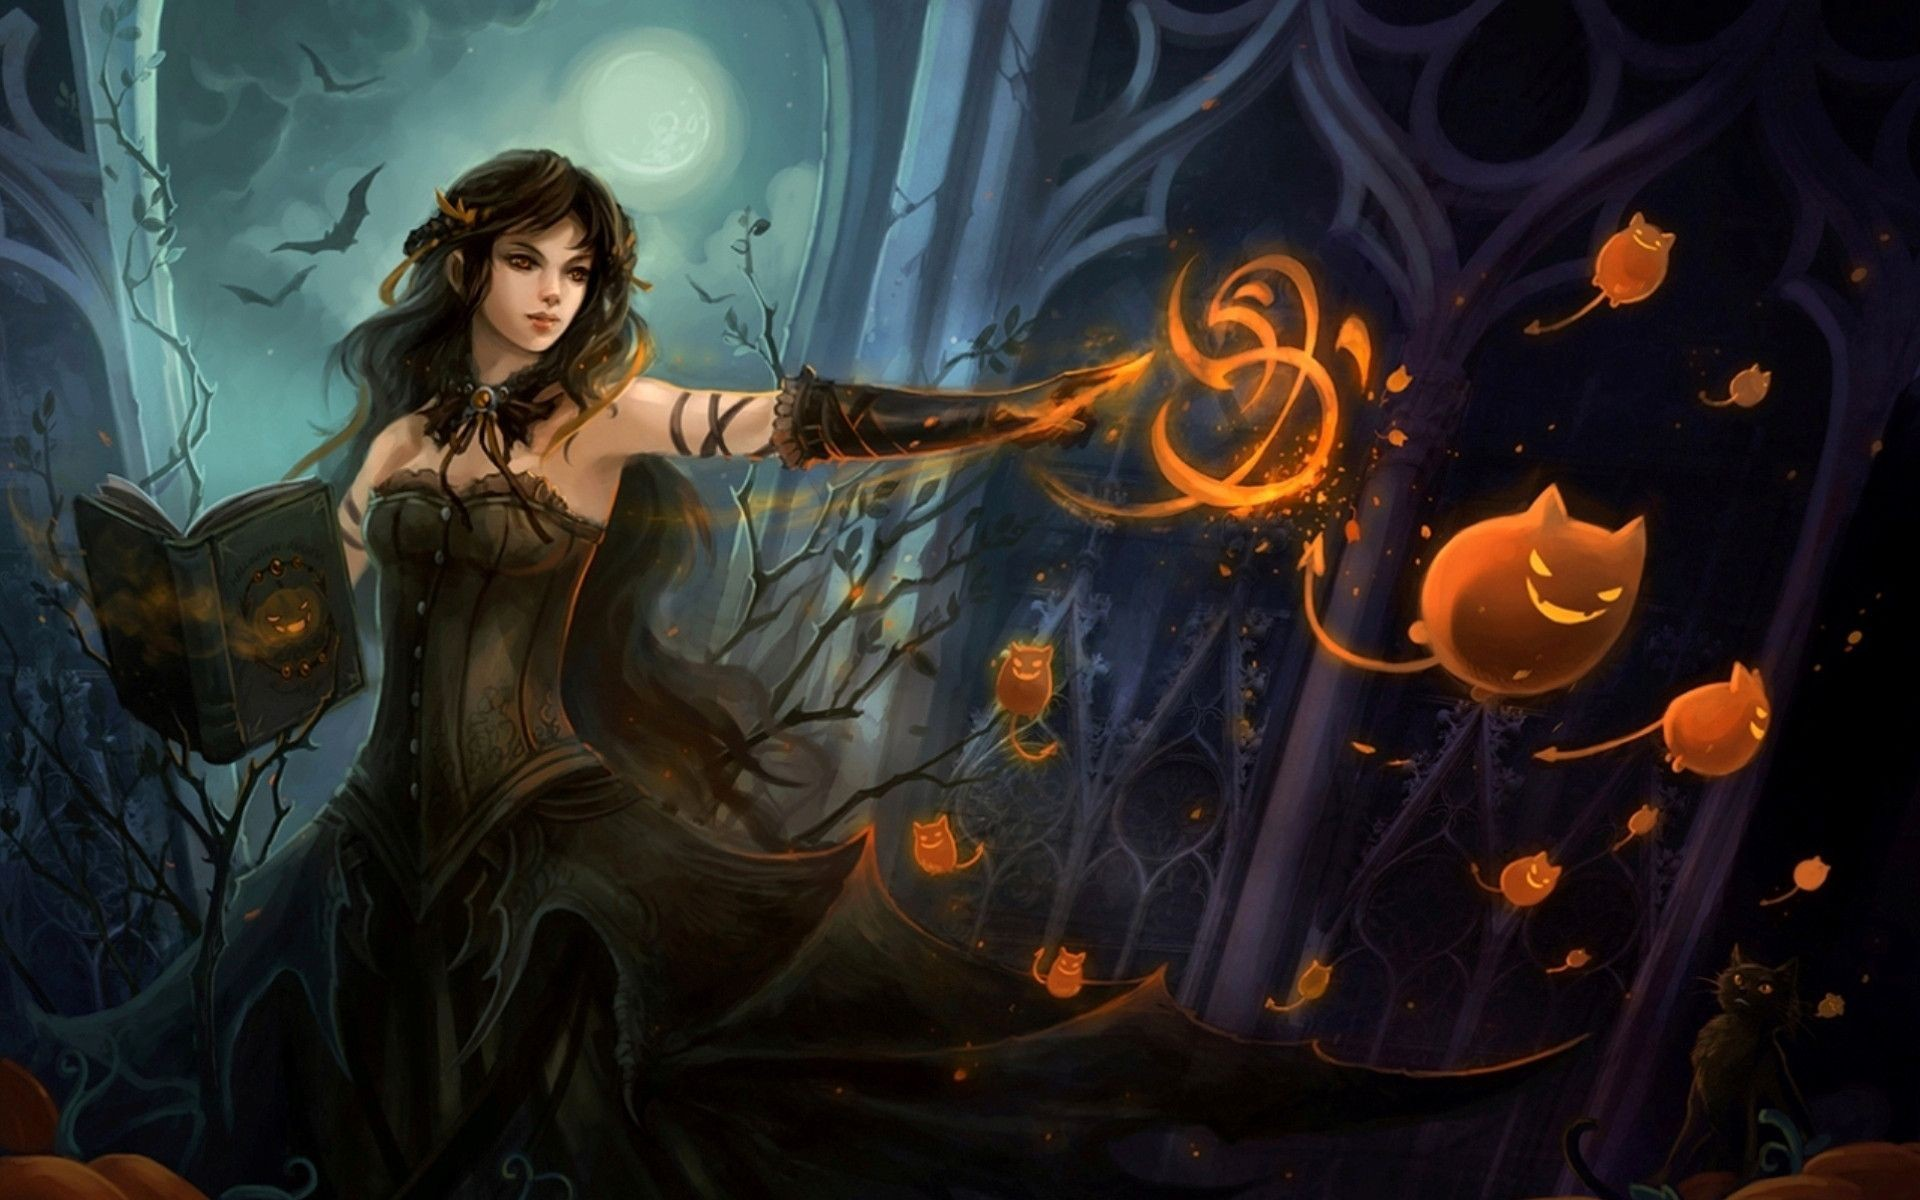 Witch Wallpaper Download Free Wallpapers For Desktop HD Wallpapers Download Free Images Wallpaper [1000image.com]